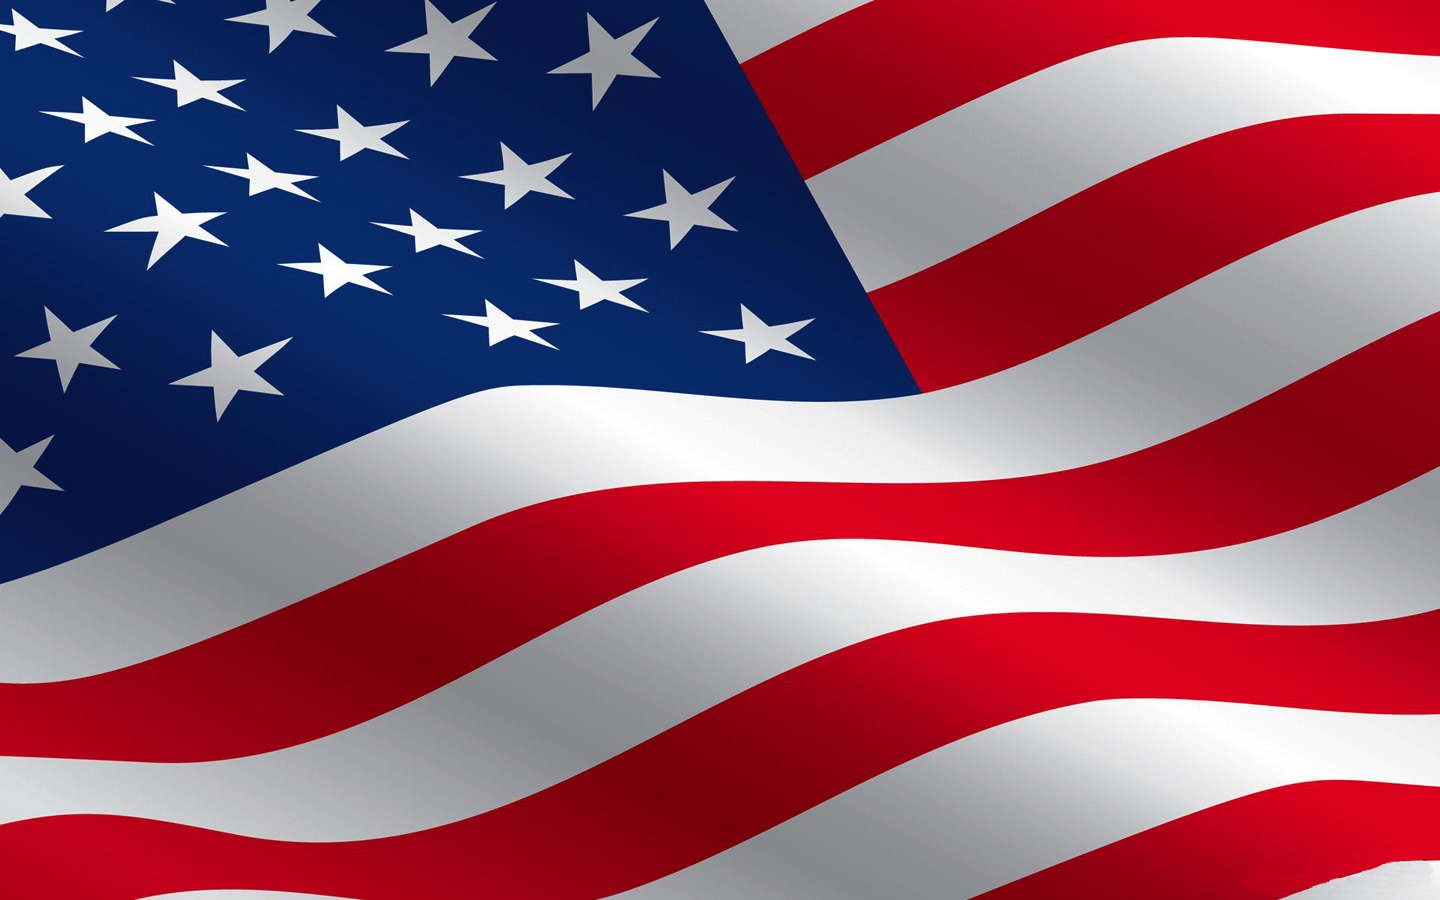 Us Flag 9336 Hd Wallpapers in Travel n World